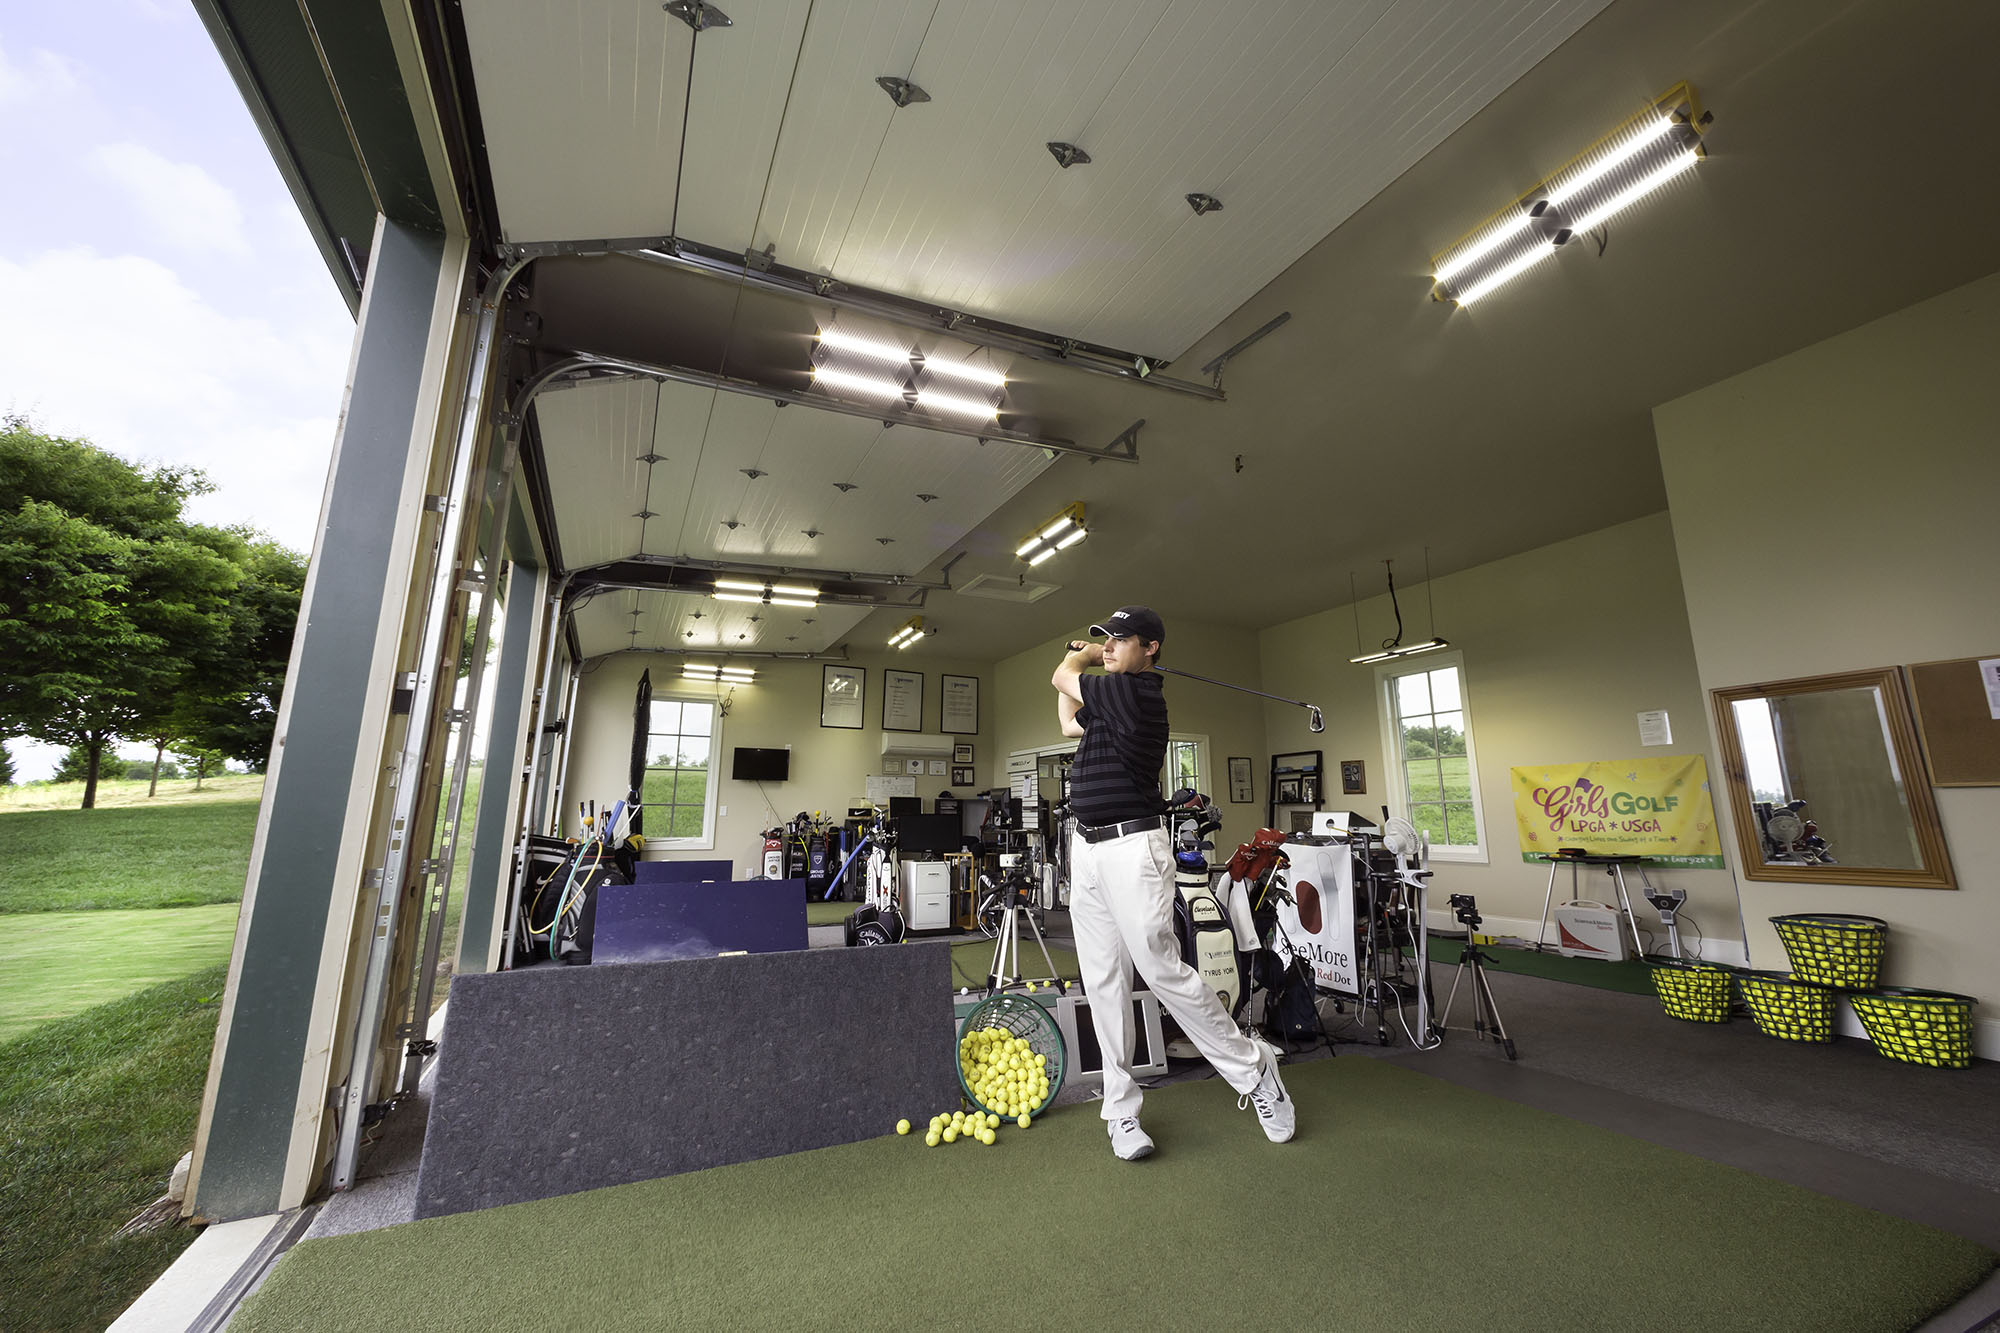 man swinging club in well lighted interior midday at golf training center